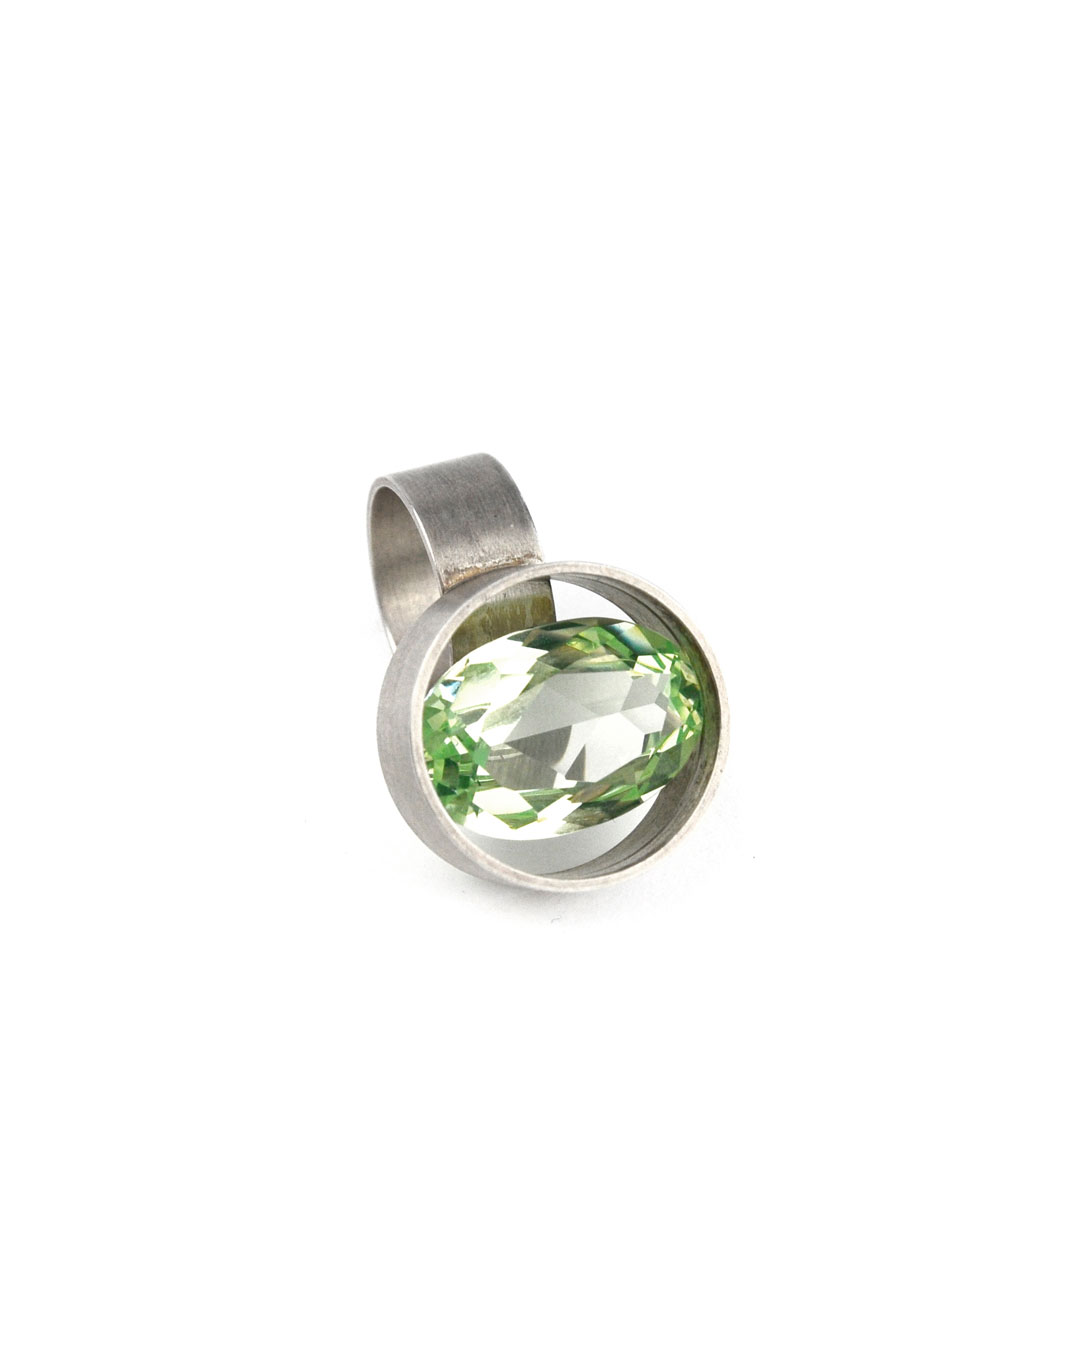 Herman Hermsen, untitled, 2000, ring; silver, synthetic stone, 29 x 25 x 33 mm, €295